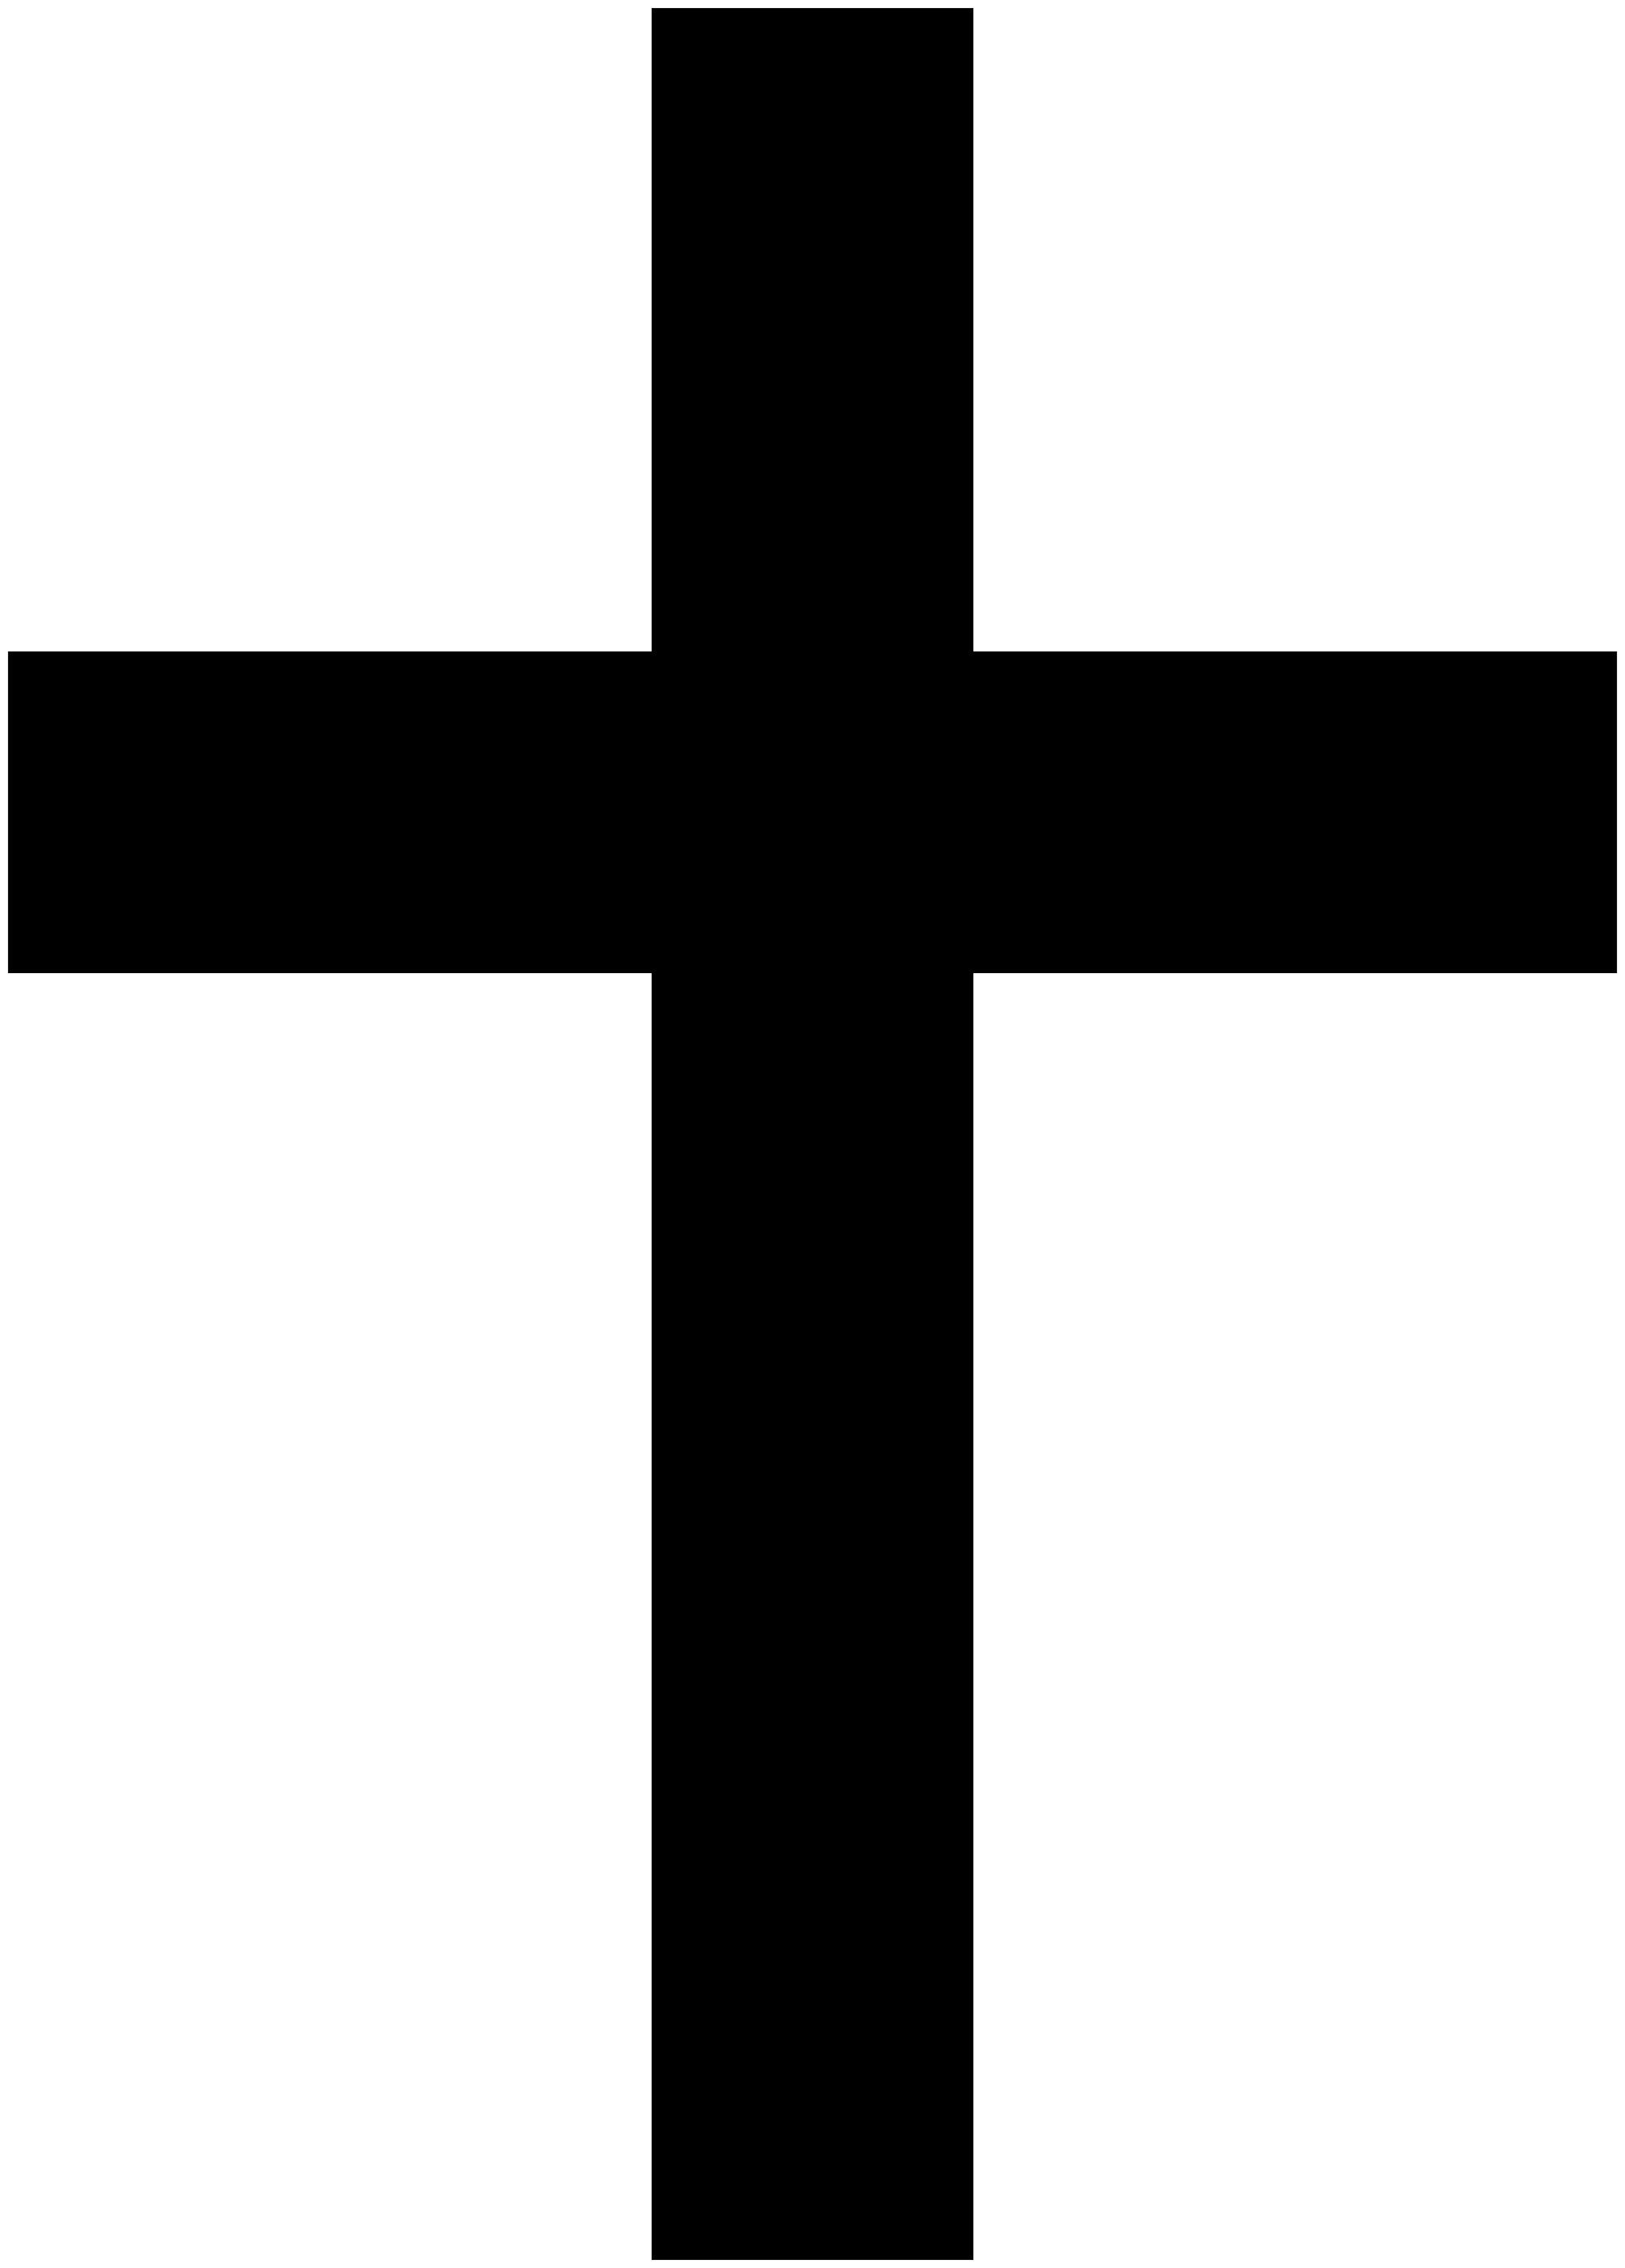 Crucifix clipart immortality. Pin by mitch washebek